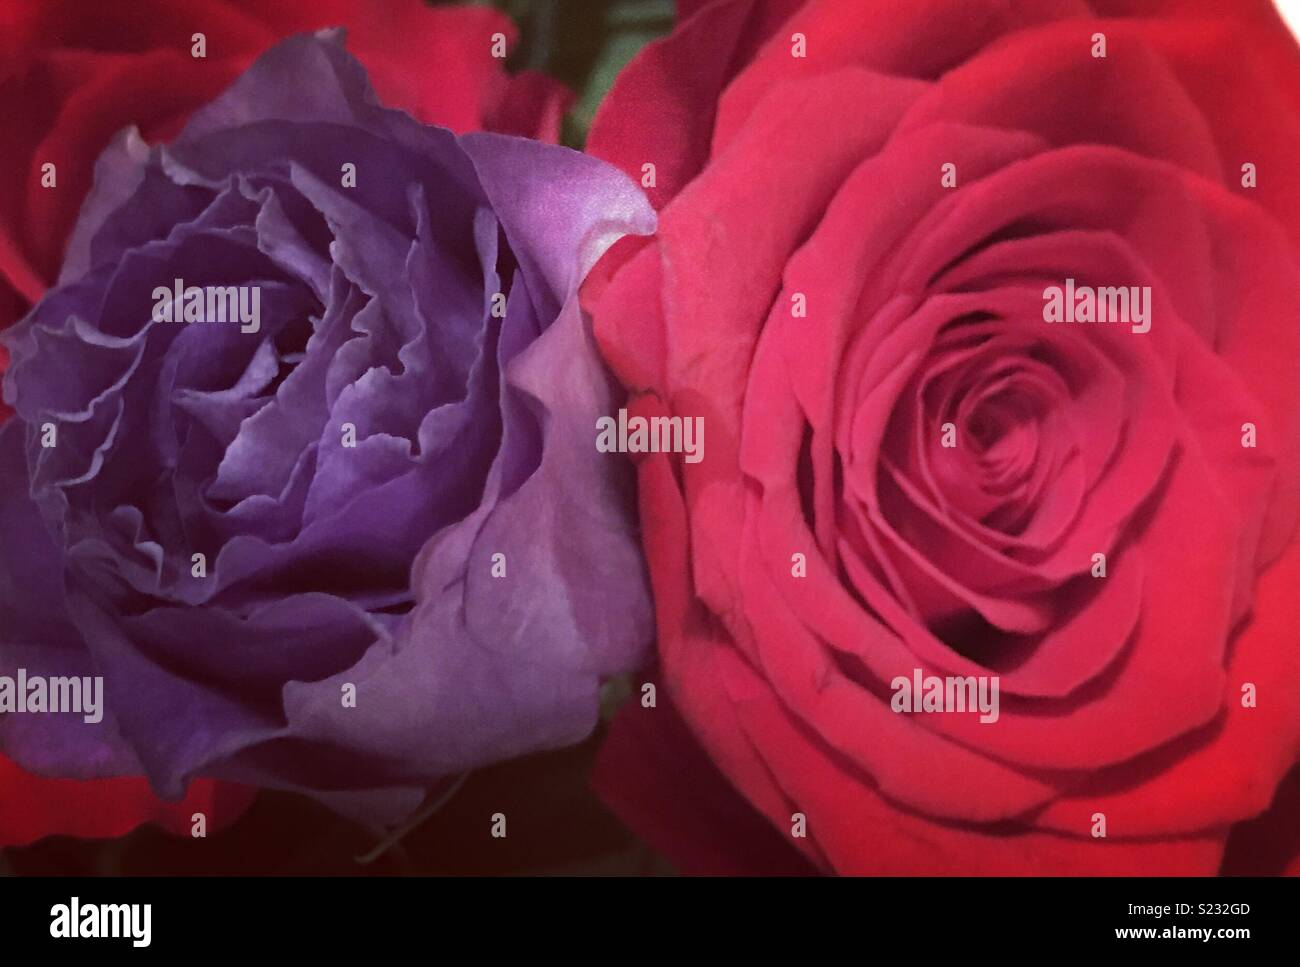 purple red roses stock